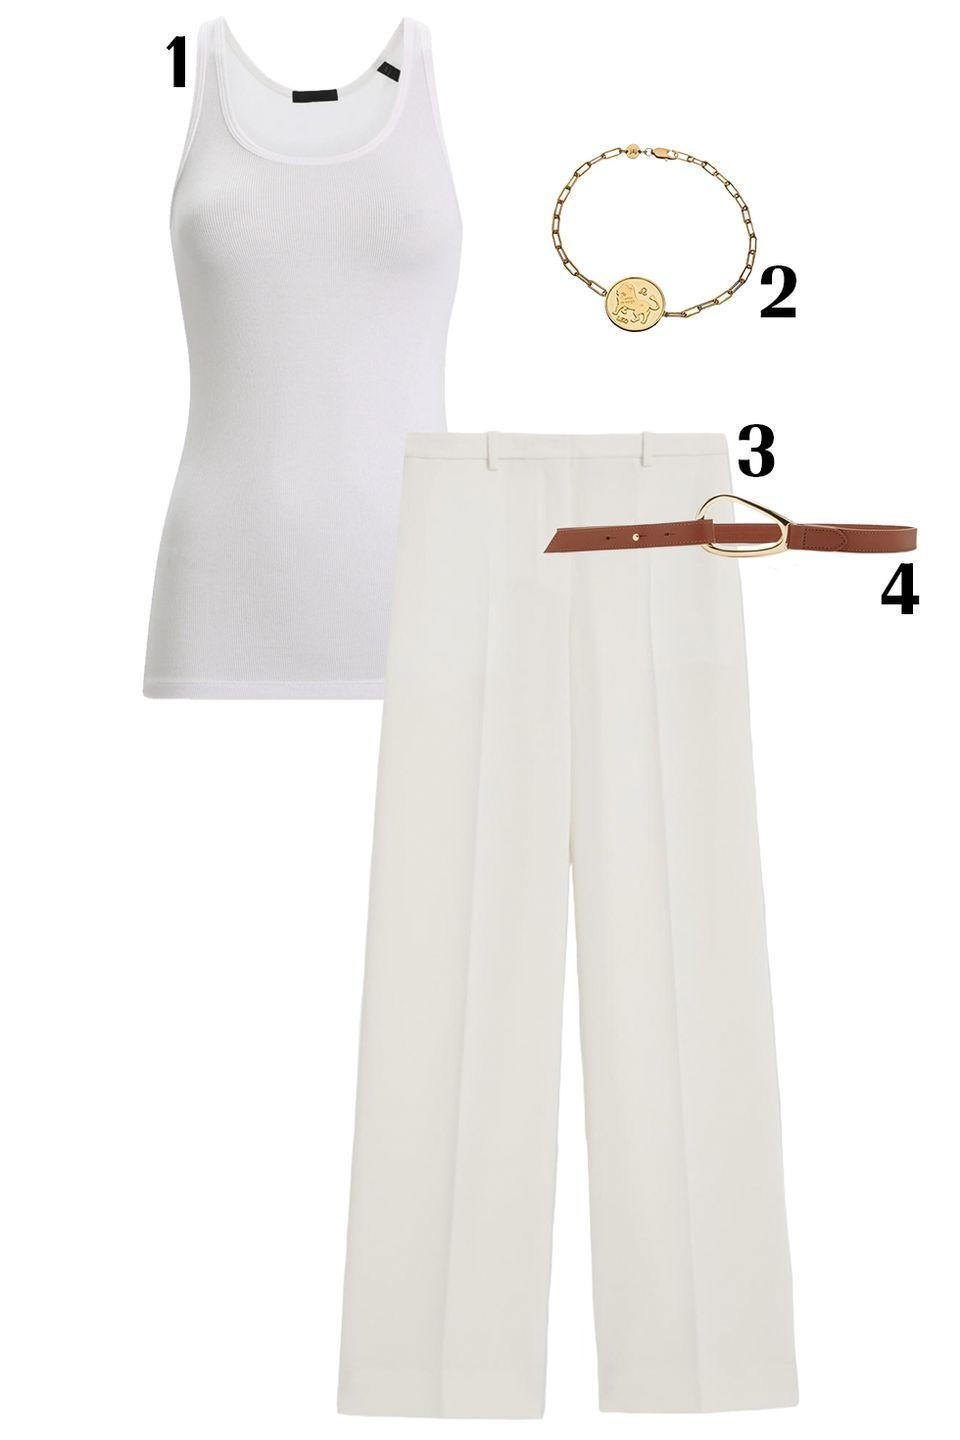 "<p>The color synonymous with summer: white. This all-white look feels both grecian and breezy. Pair light-weight pants with a matching top to create a canvas for your accessories to shine. Editor's note: it's important that your belt and jewelry and any other accessories you add are good quality since the look itself is so minimal. </p><p>1) <a href=""https://www.intermixonline.com/atm-anthony-thomas-melillo/the-boy-rib-knit-tank-top/AW1176+EC+BOY+TNK+WHT.html?irgwc=1&irclickid=T4zQ9-3H5xyOUakwUx0Mo38TUkixOfxlwUjszU0&utm_medium=affiliate&utm_campaign=Shop%20New%20Arrivals&utm_source=ShopStyle%20Inc."" rel=""nofollow noopener"" target=""_blank"" data-ylk=""slk:ATM Anthony Thomas Melillo top"" class=""link rapid-noclick-resp"">ATM Anthony Thomas Melillo top</a>, $98 2) <a href=""https://jenniferzeuner.com/collections/bracelets/products/mathis-bracelet"" rel=""nofollow noopener"" target=""_blank"" data-ylk=""slk:Jennifer Zeuner bracelet"" class=""link rapid-noclick-resp"">Jennifer Zeuner bracelet</a>, $165 3) <a href=""https://www.theory.com/wide-trouser/J1109202.html?gclid=Cj0KCQjwm9D0BRCMARIsAIfvfIbO86POtgmB1TtUvKqKLL8QhlUOA9gv9RDeABTxGrGgIuDBVYAMfeAaAqf8EALw_wcB&glCountry=US&glCurrency=USD&utm_campaign=PLA_Female_NonBrand_DSKTAB_873367601&utm_medium=pla&utm_source=google"" rel=""nofollow noopener"" target=""_blank"" data-ylk=""slk:Theory trousers"" class=""link rapid-noclick-resp"">Theory trousers</a>, $325 4) <a href=""https://www.modaoperandi.com/maison-vaincourt-pf19/skinny-leather-belt?color=brown&material=Leather"" rel=""nofollow noopener"" target=""_blank"" data-ylk=""slk:Maison Vaincourt belt"" class=""link rapid-noclick-resp"">Maison Vaincourt belt</a>, $275 </p>"